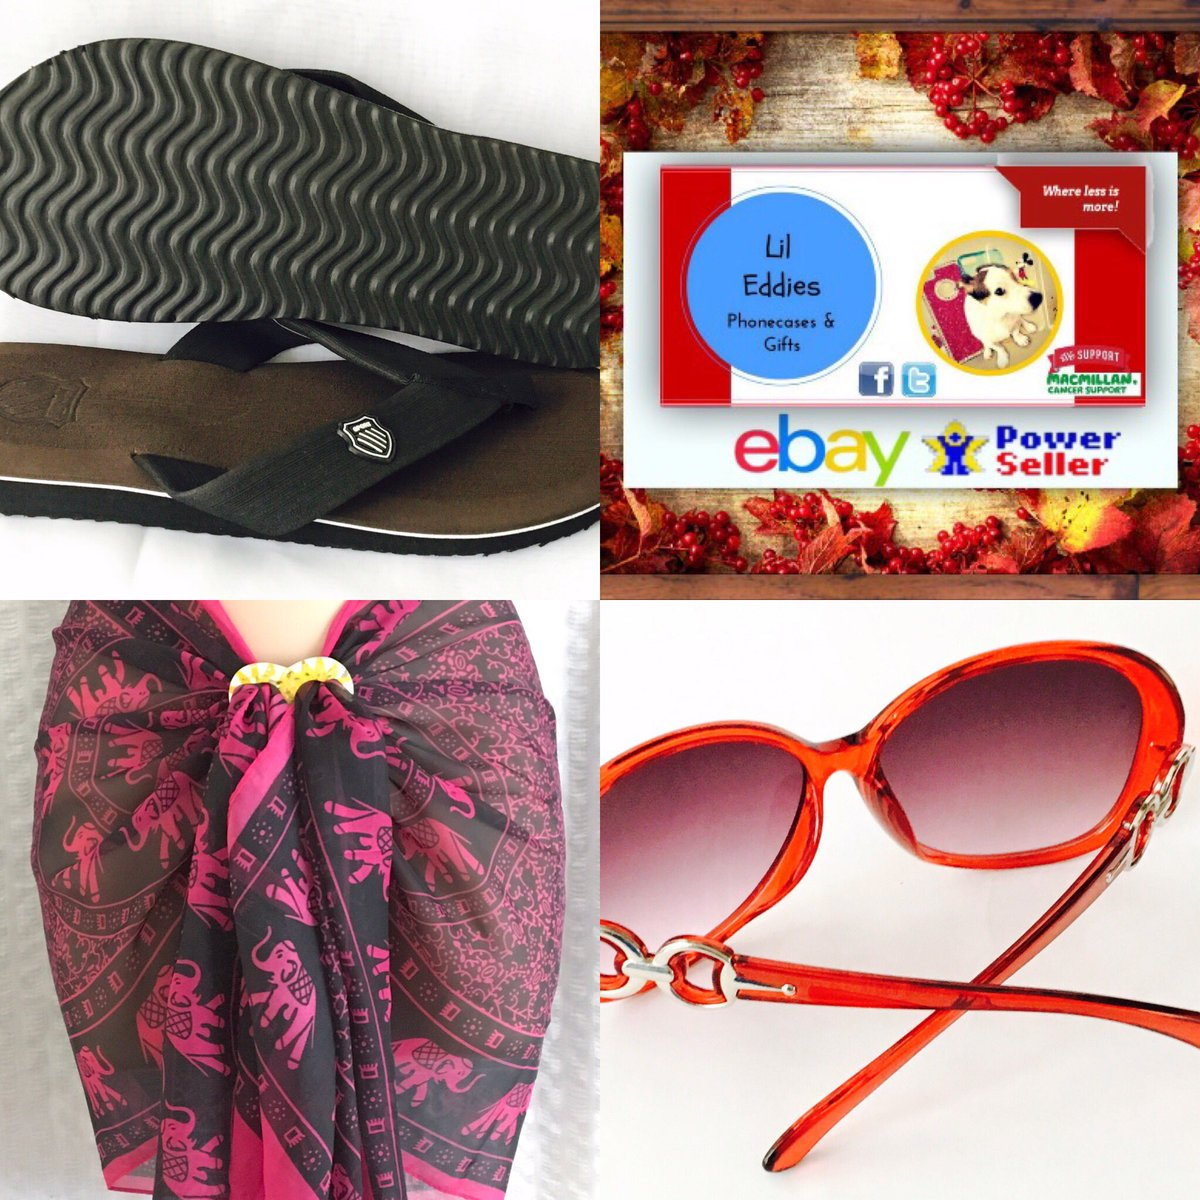 Enjoy your #HOLIDAYS @LilEddies with our #SUMMER #SALE #Flipflops #sunglasses    http:// Stores.shop.ebay.co.uk/lil-Eddies-Pho necases-and-gifts &nbsp; …   RT FOLLOW 4 a chance 2 WIN a PRIZE<br>http://pic.twitter.com/4rSc1p1rdA